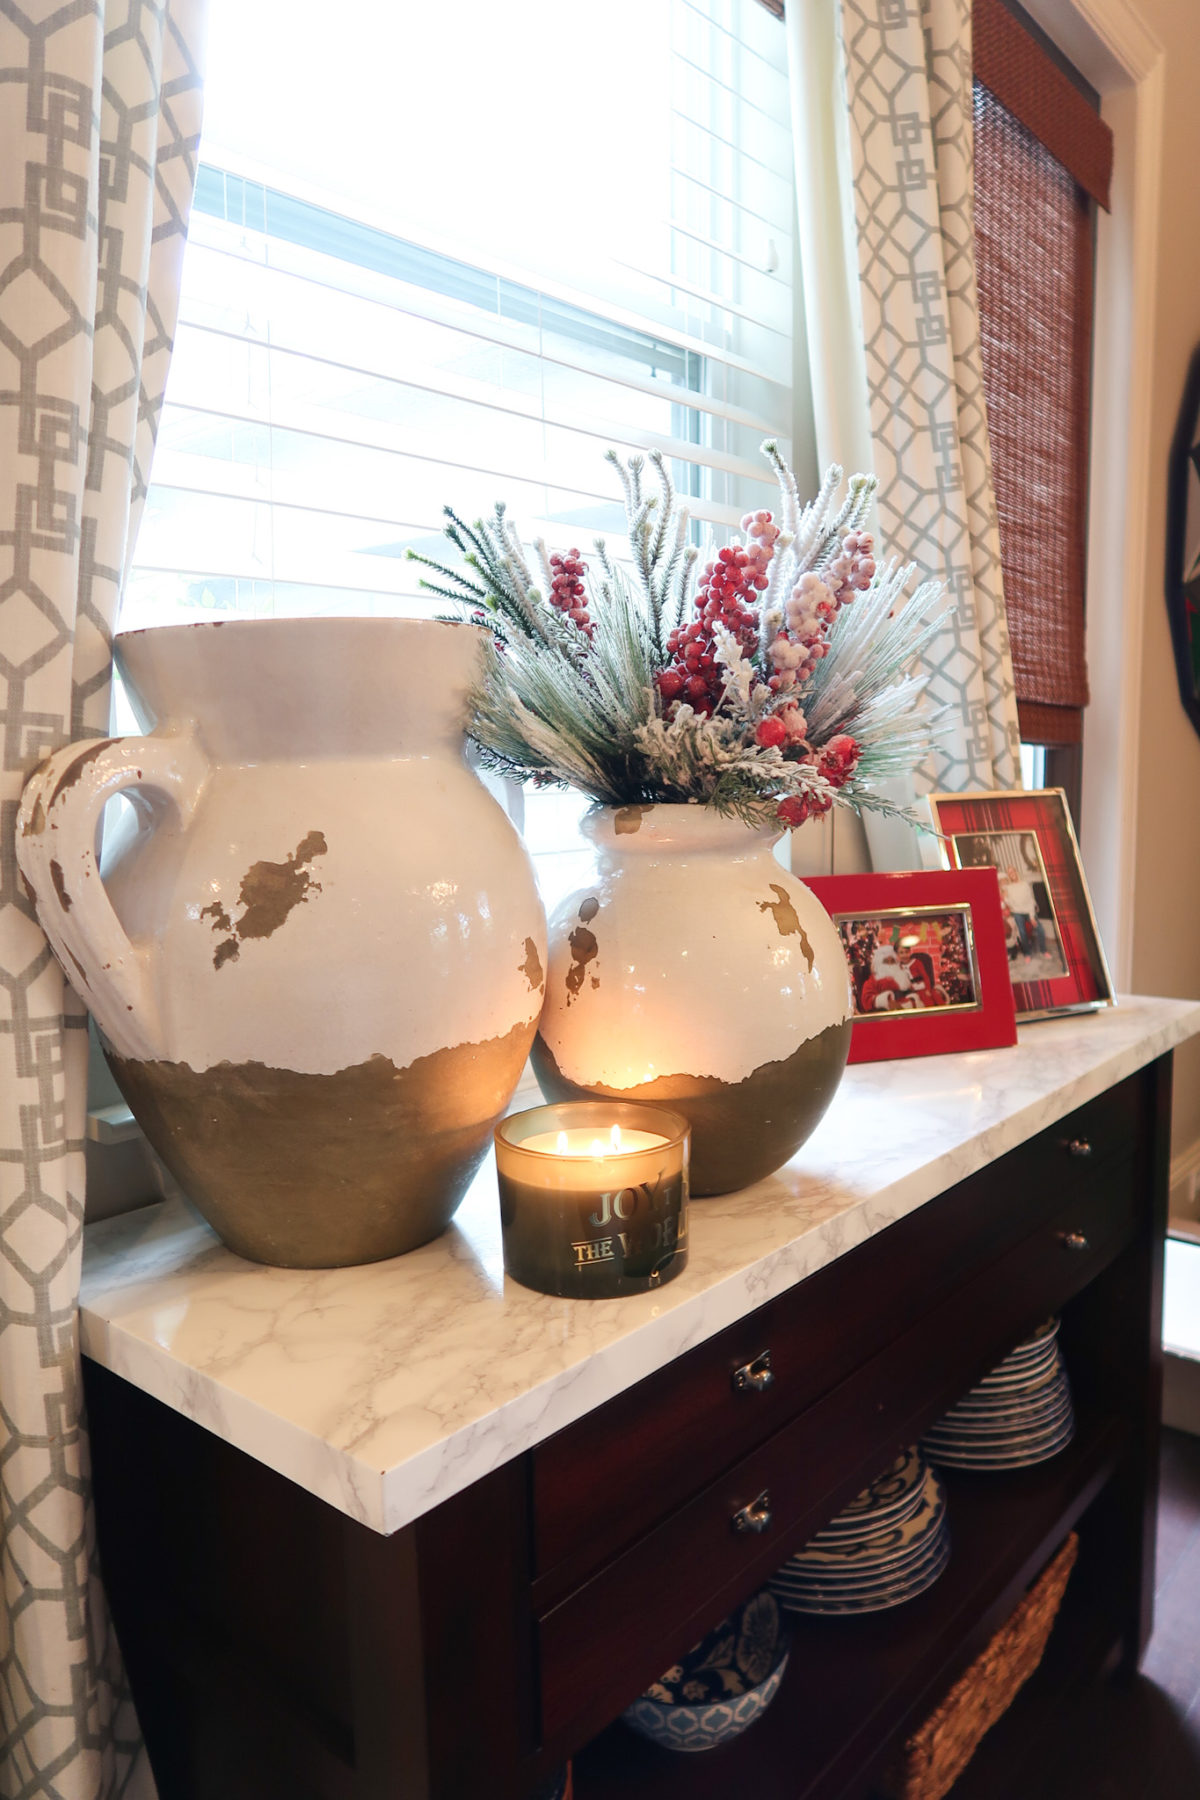 Christmas Home Tour, Jug Vases, Greenery, Joy Candle, Plaid Picture Frames